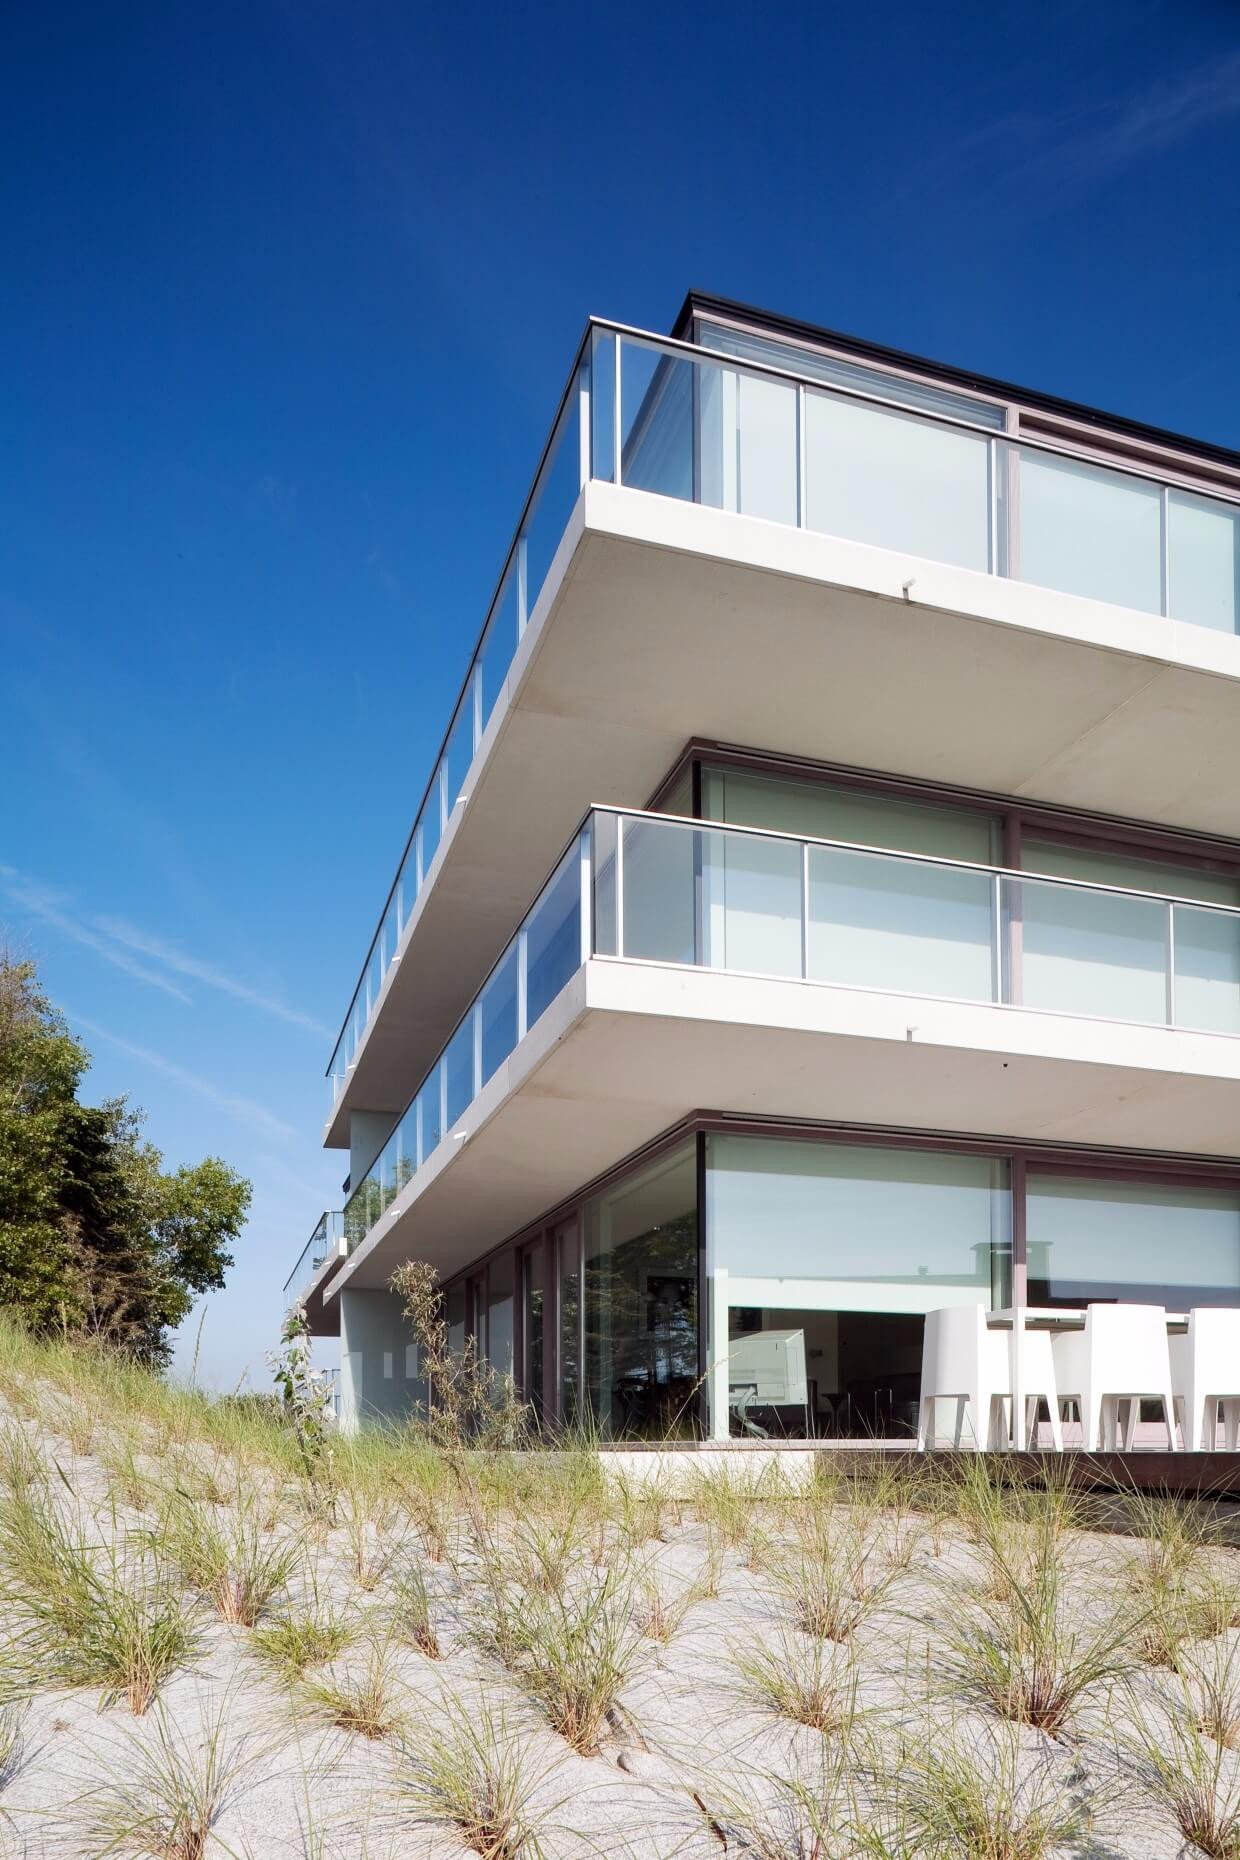 Rietveldprojects-Periscoop-appartement-design-architectuur-kust